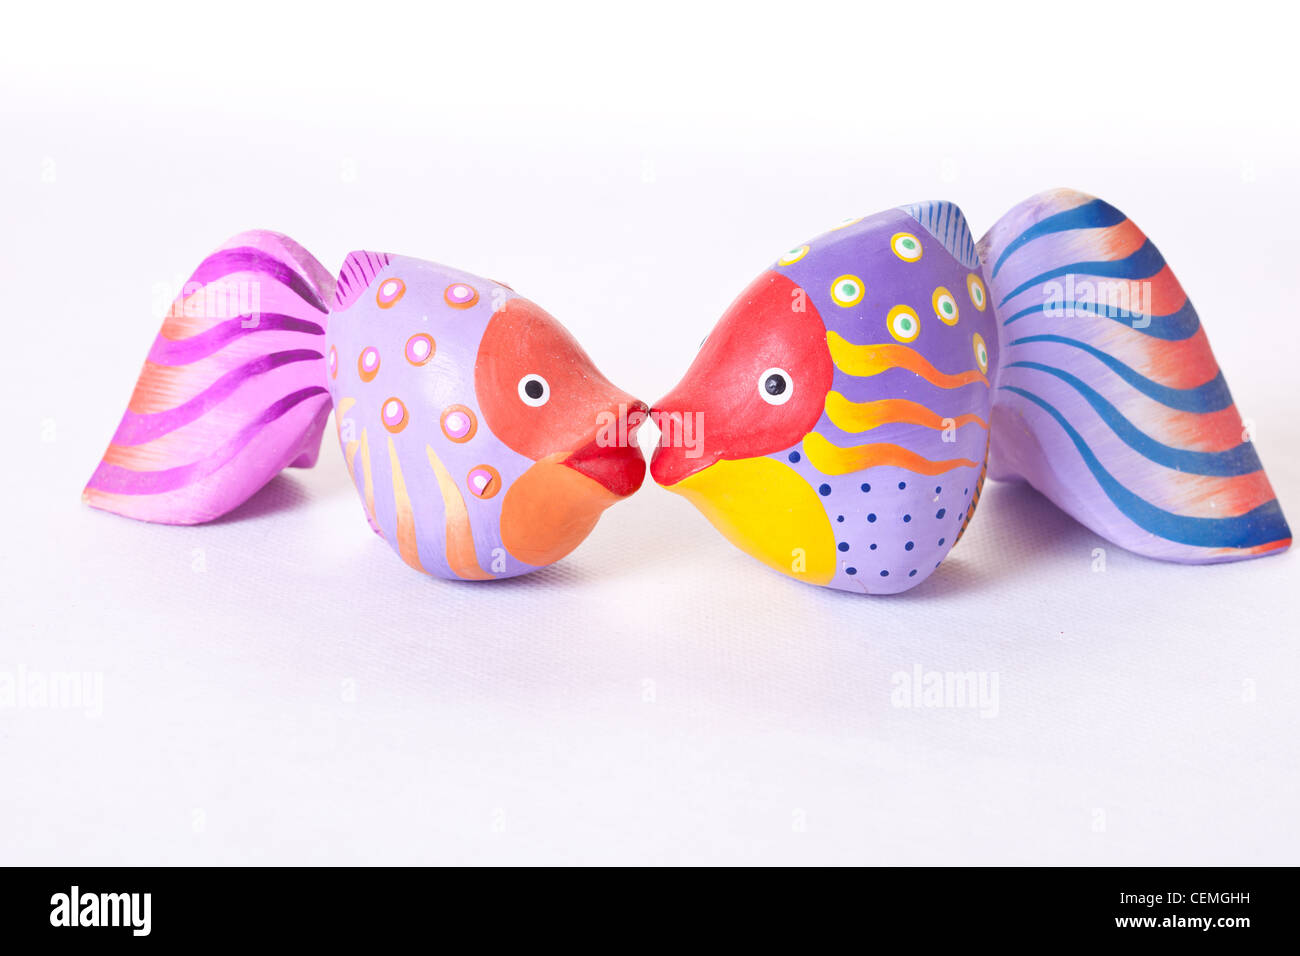 Kissing fish ornament - Wooden Brightly Coloured Fish Ornaments Kissing Fish Pouting Fish Purple Fish Pink Fish